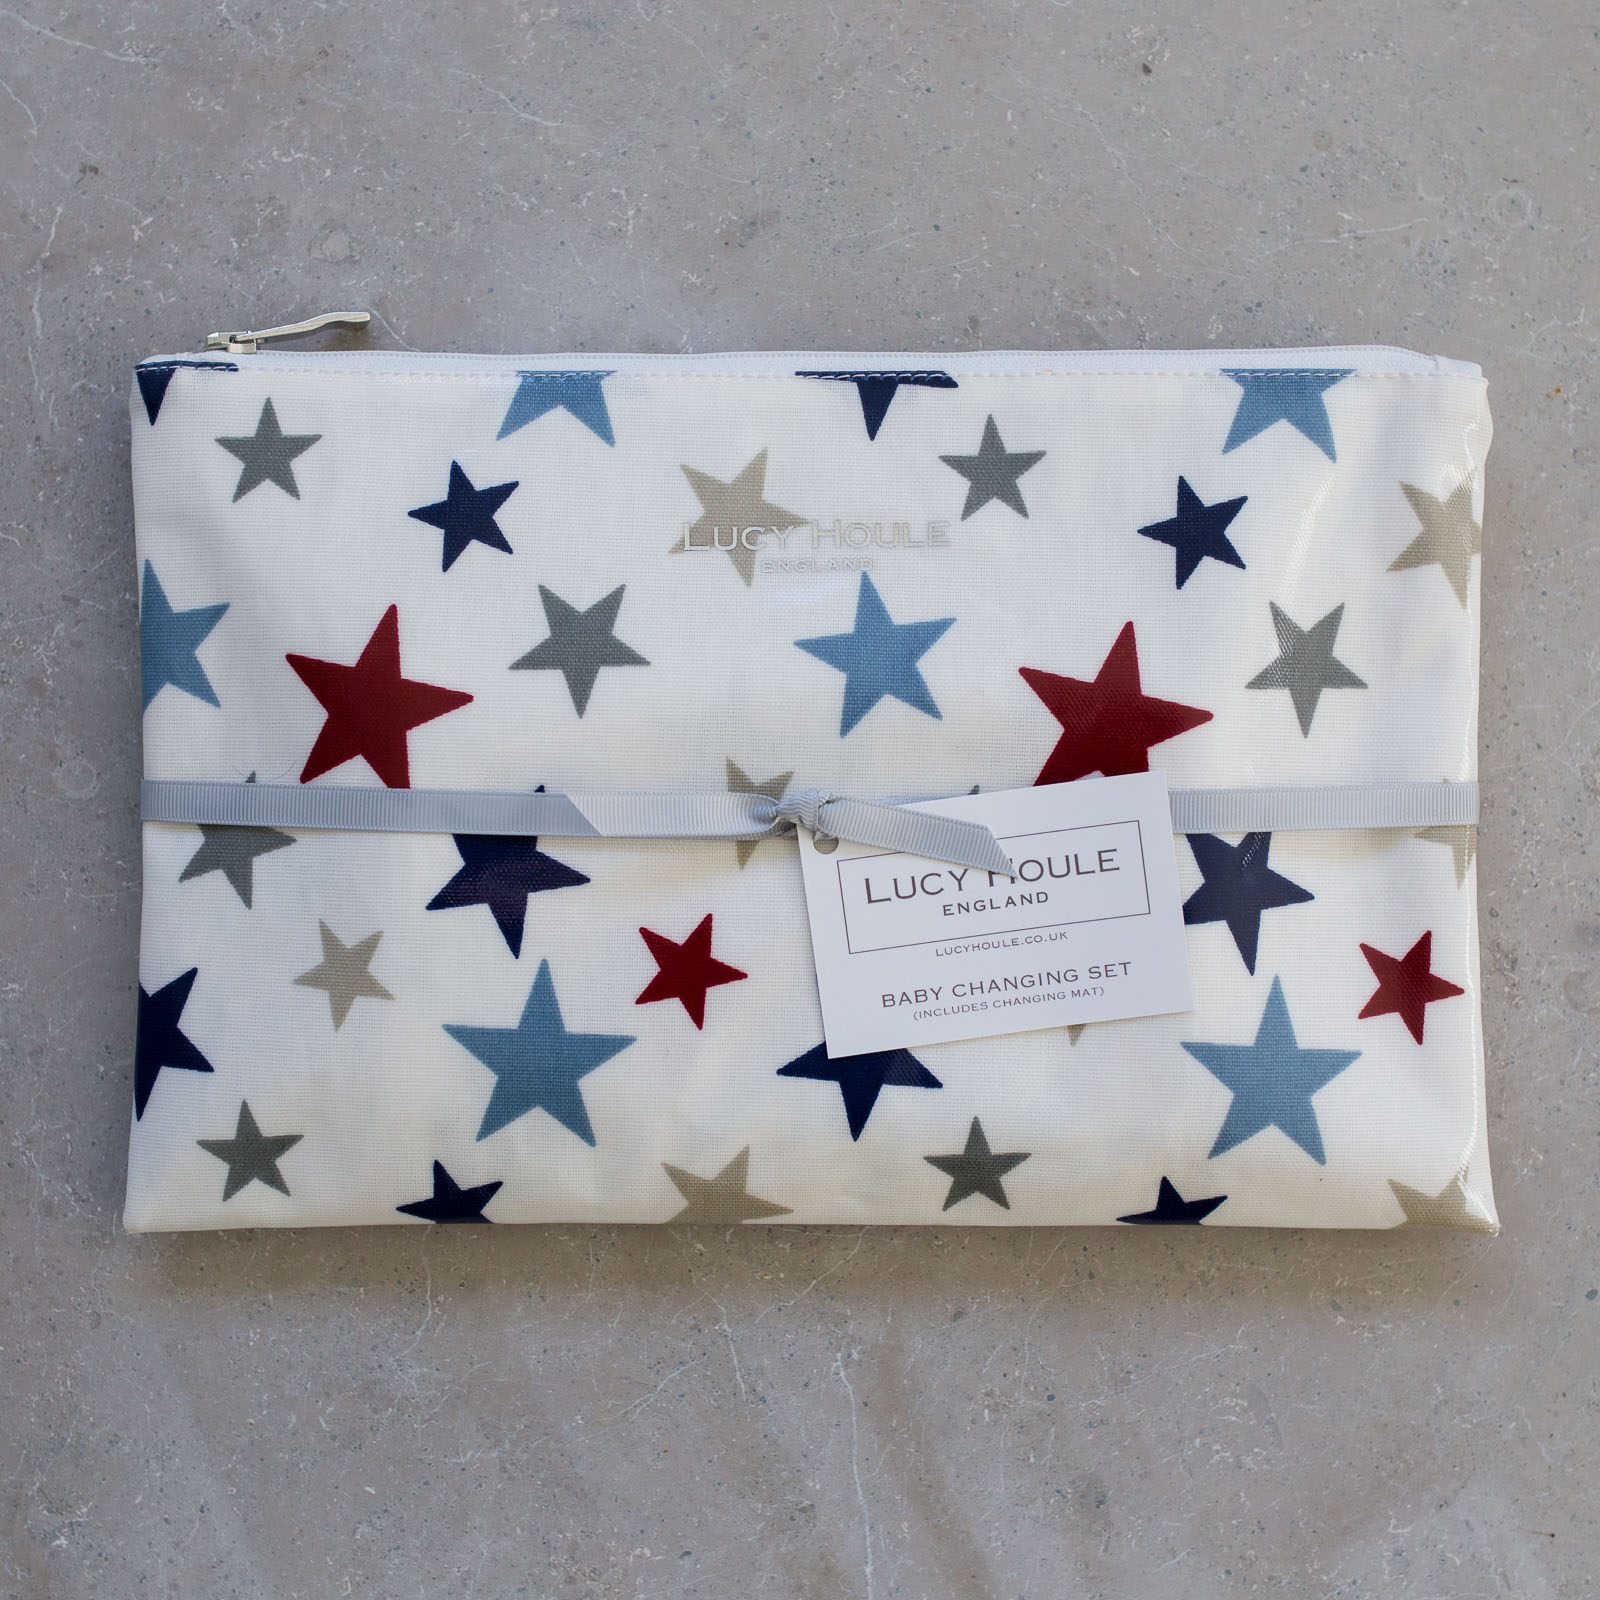 New England Star Blue Baby Changing Set